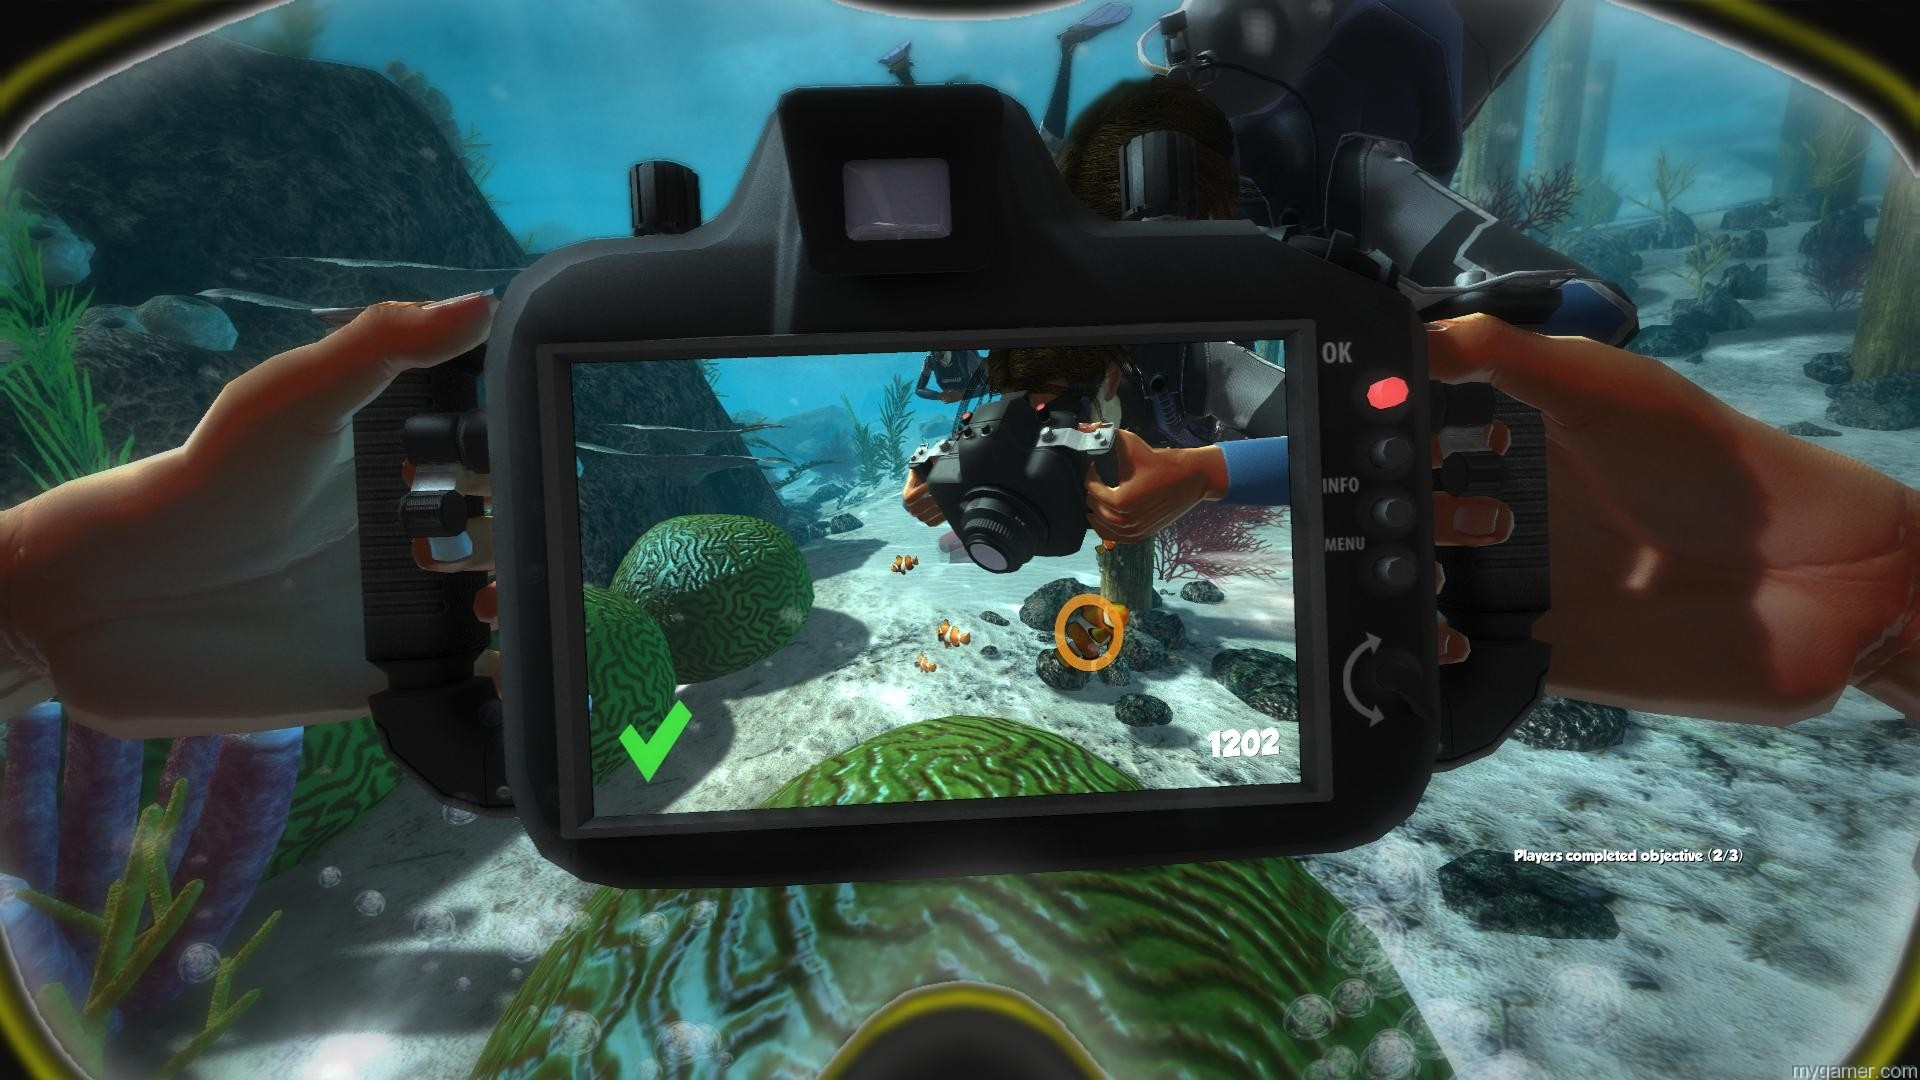 Oculus Rift enabled dive game World of Diving gets pre-alpha multiplayer gameplay trailer Oculus Rift enabled dive game World of Diving gets pre-alpha multiplayer gameplay trailer screenshot 01